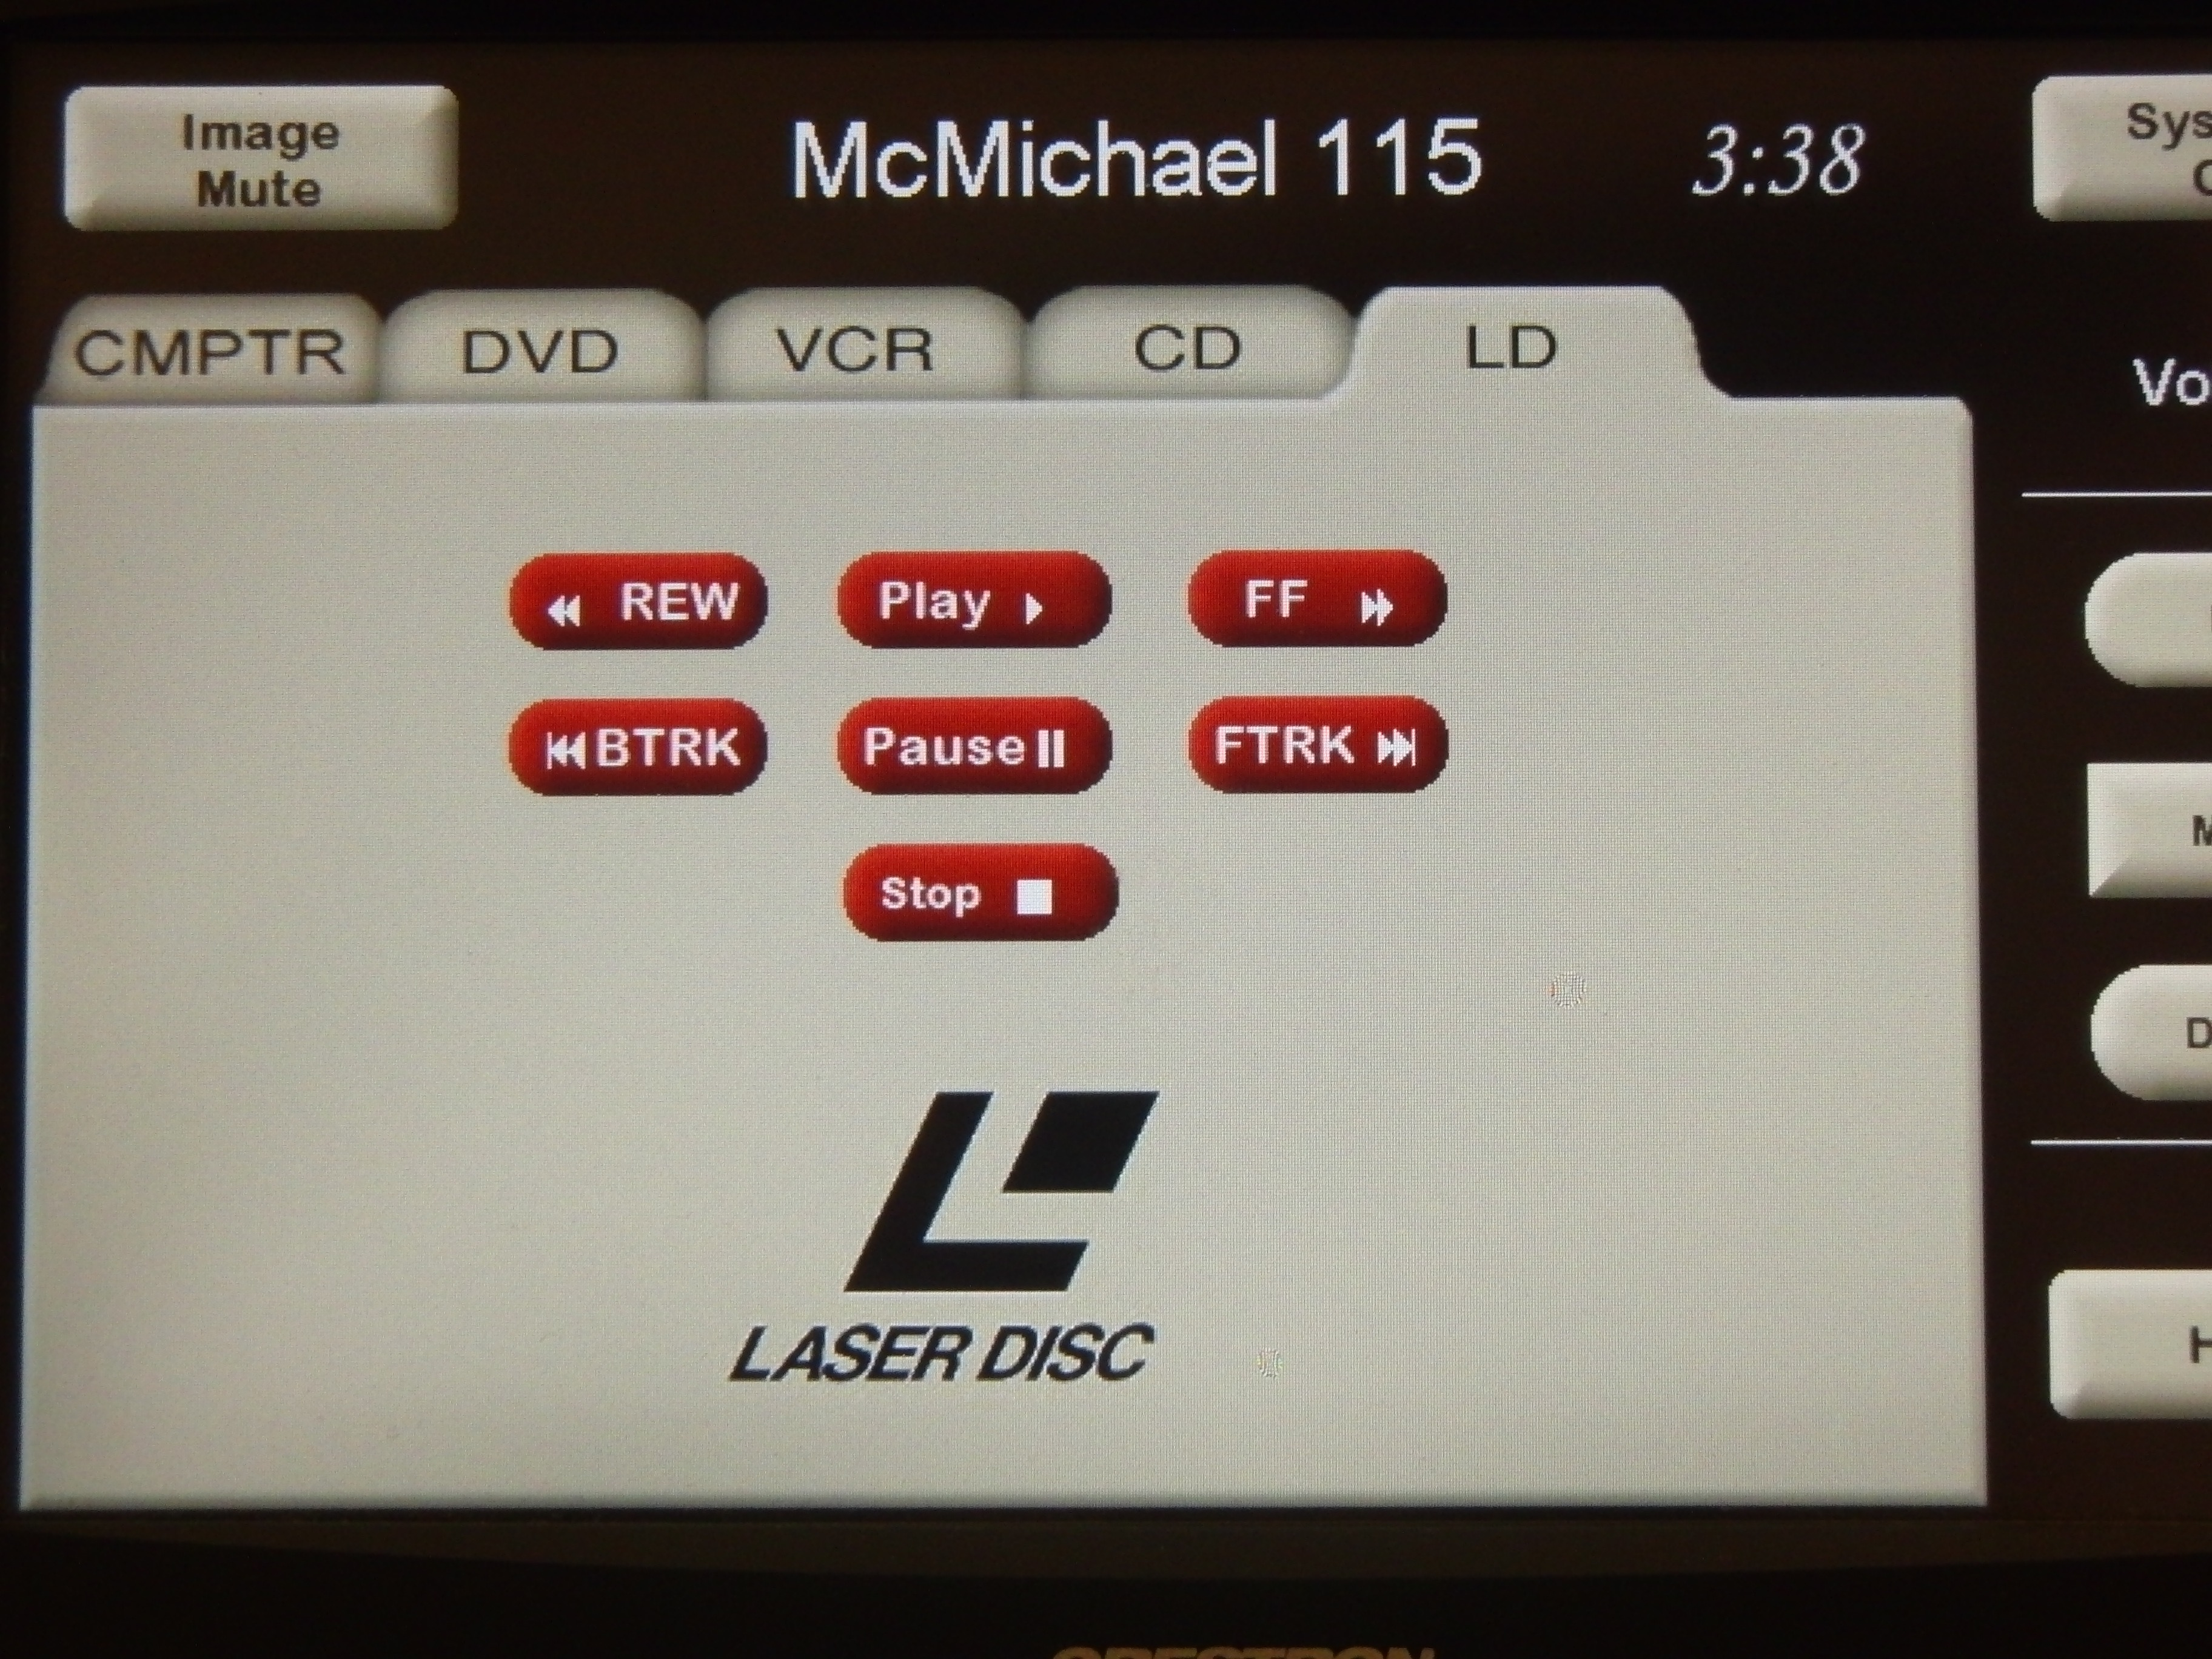 Photo of crestron control touch panel with the laser disk tab active